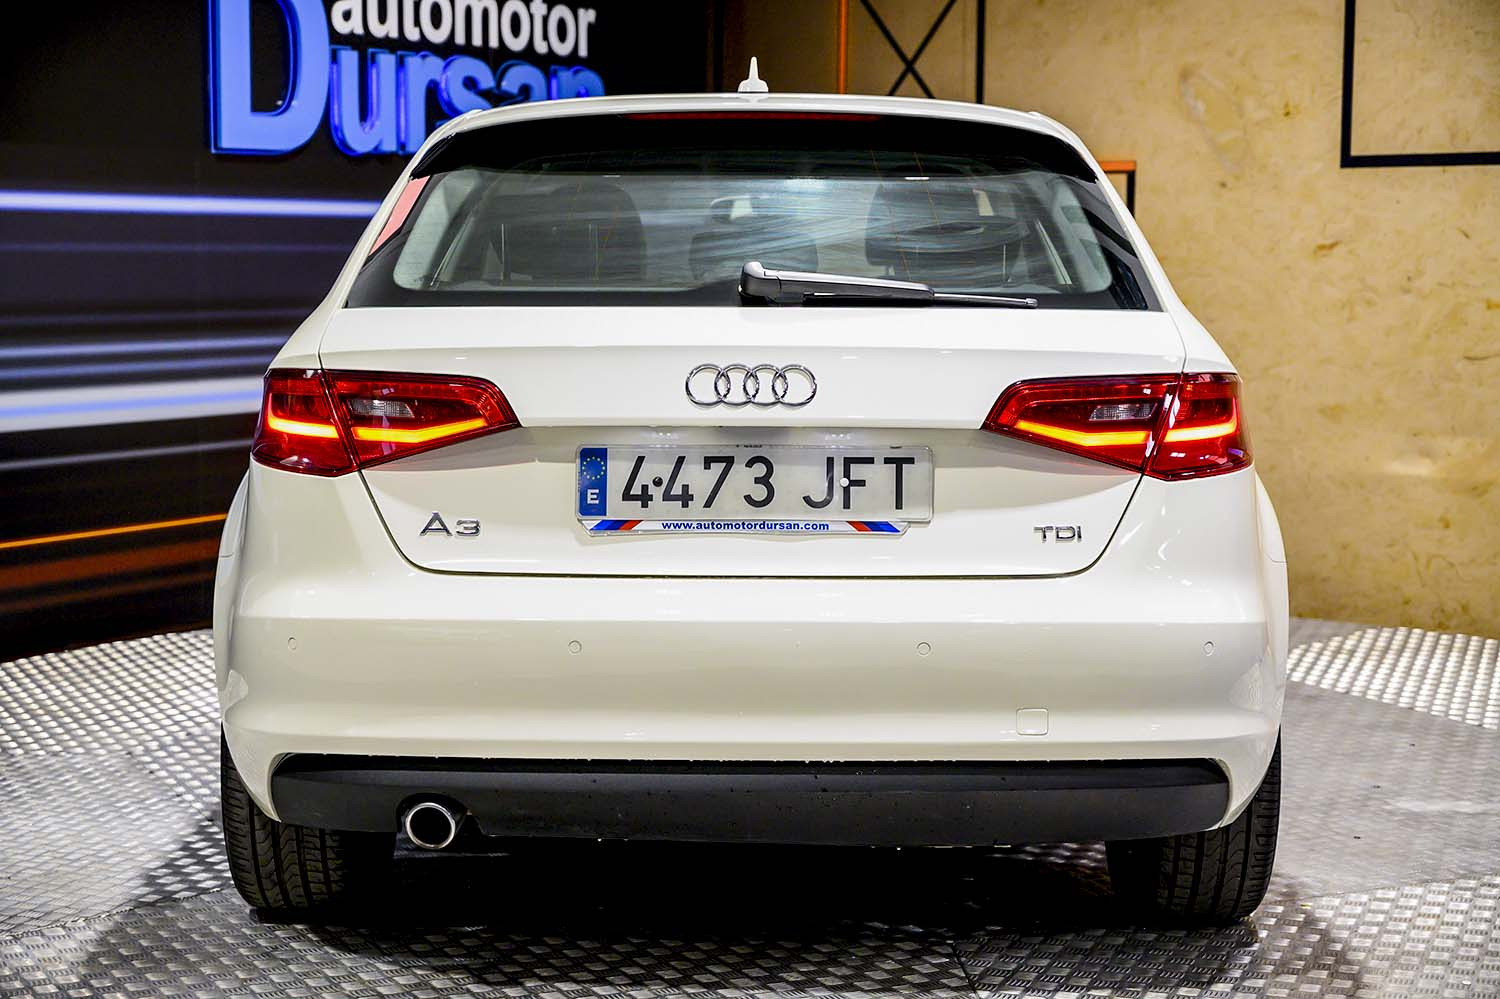 Coches de Segunda Mano Audi A3 Sportback 1.6 TDI clean d 110CV Advanced 0000005984